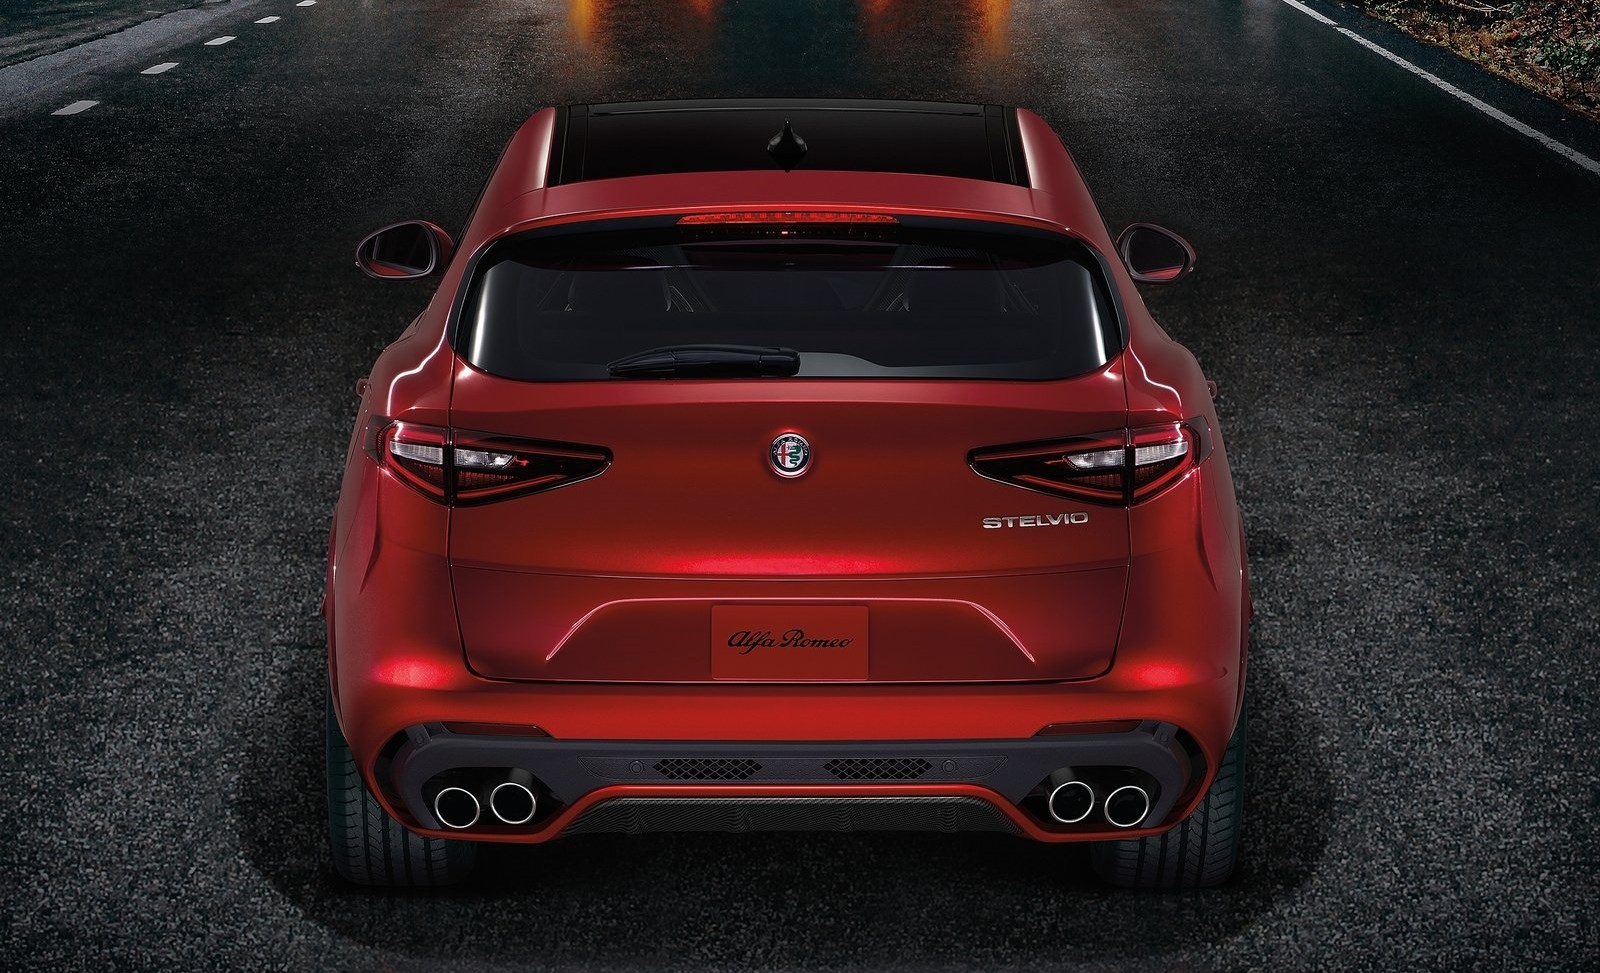 Heart Gallery of Northwest Texas  20192020 New Car Reviews